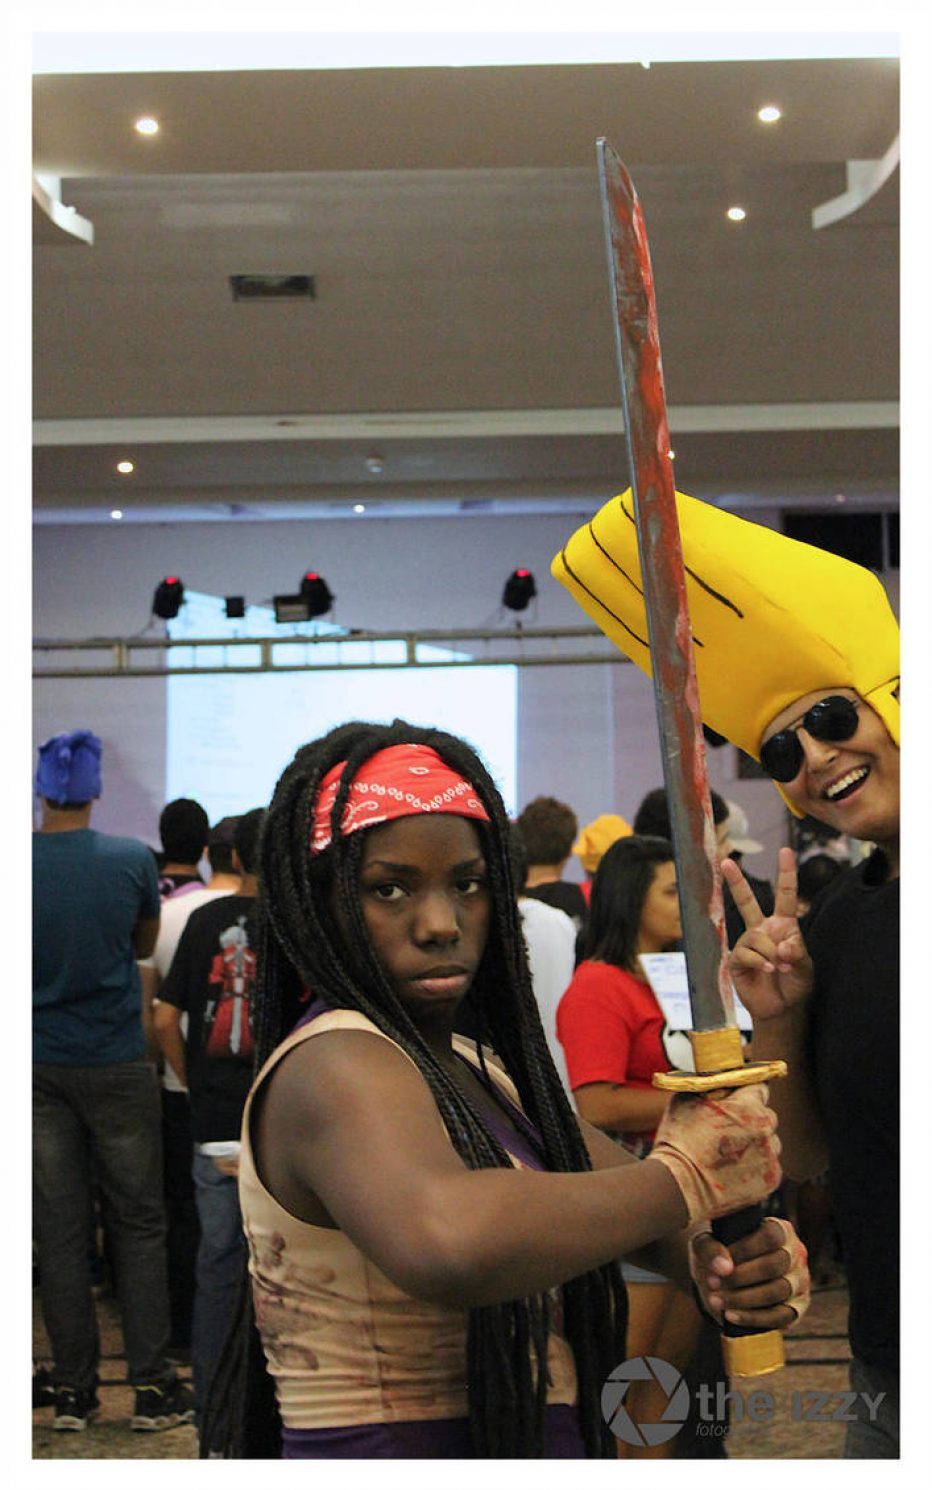 The-Walking-Dead-Michonne-Cosplay-Gamers-Heroes-2.jpg